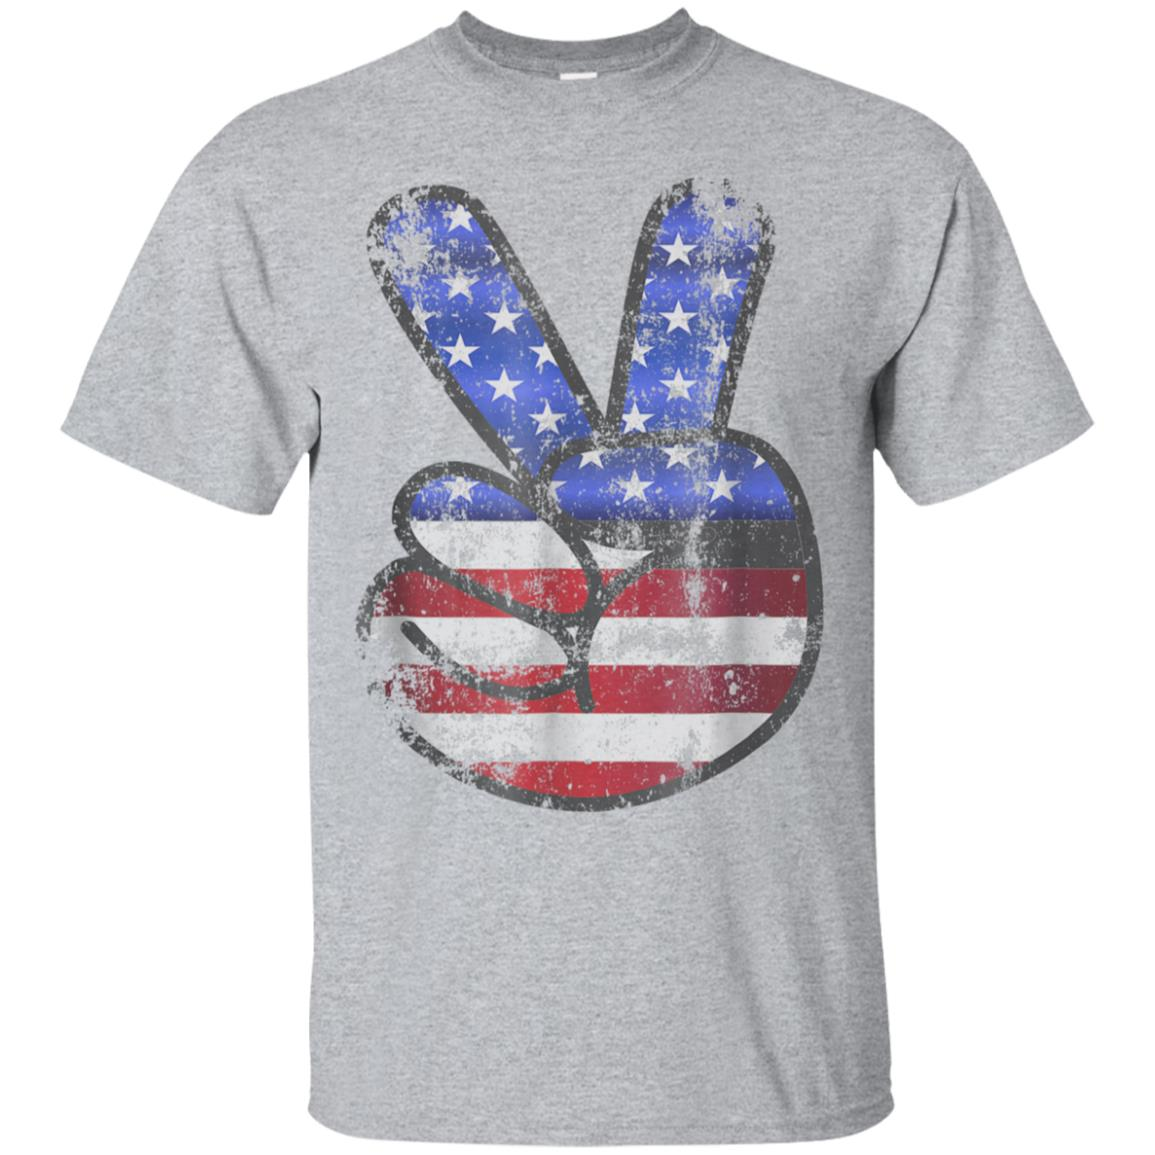 American Flag Shirt USA Vintage Peace Sign 4th of July Gift 99promocode